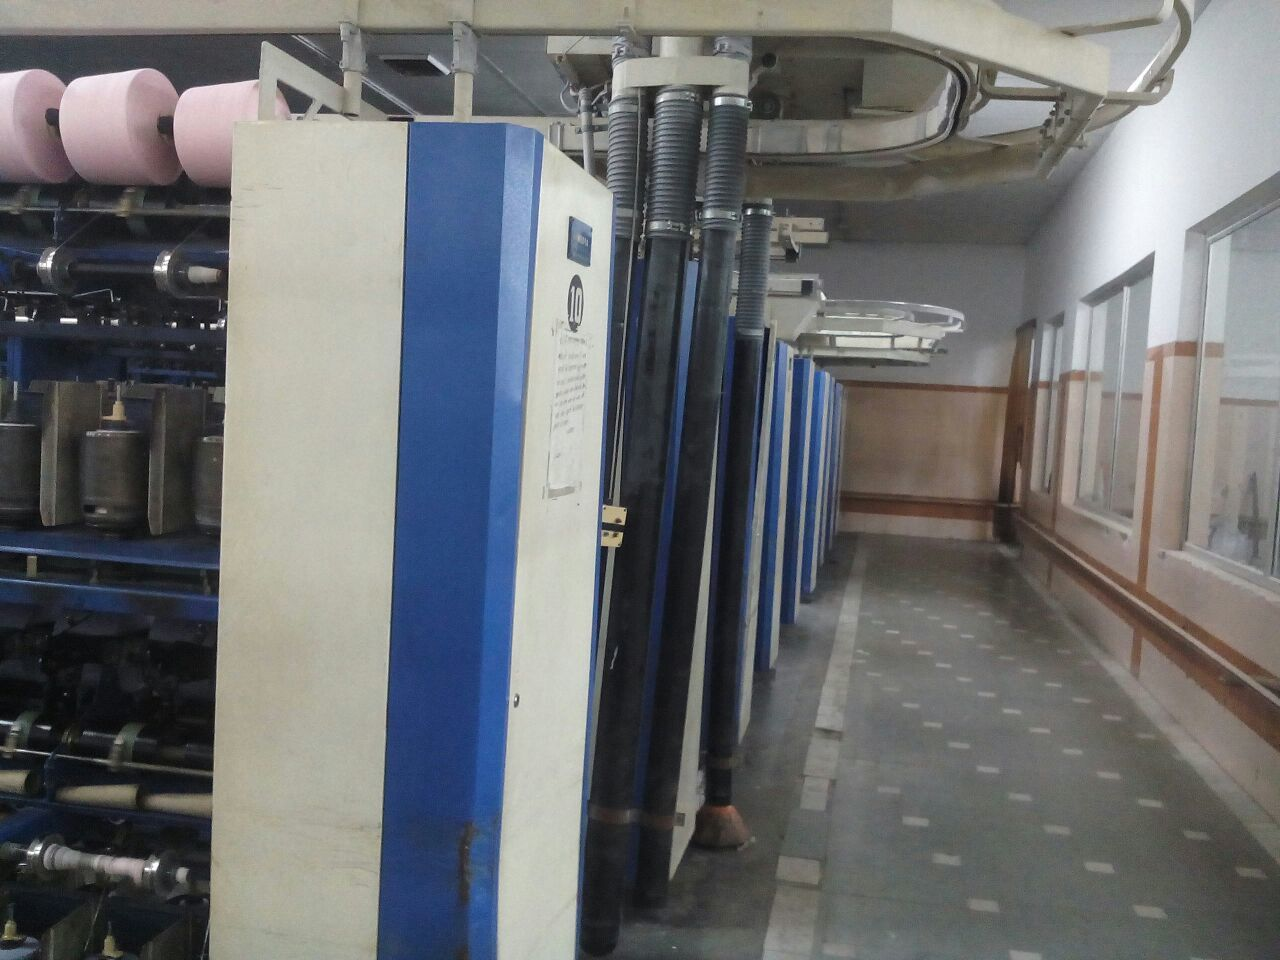 Buy Sell Used Second Hand Industrial Machinery Equipment Online